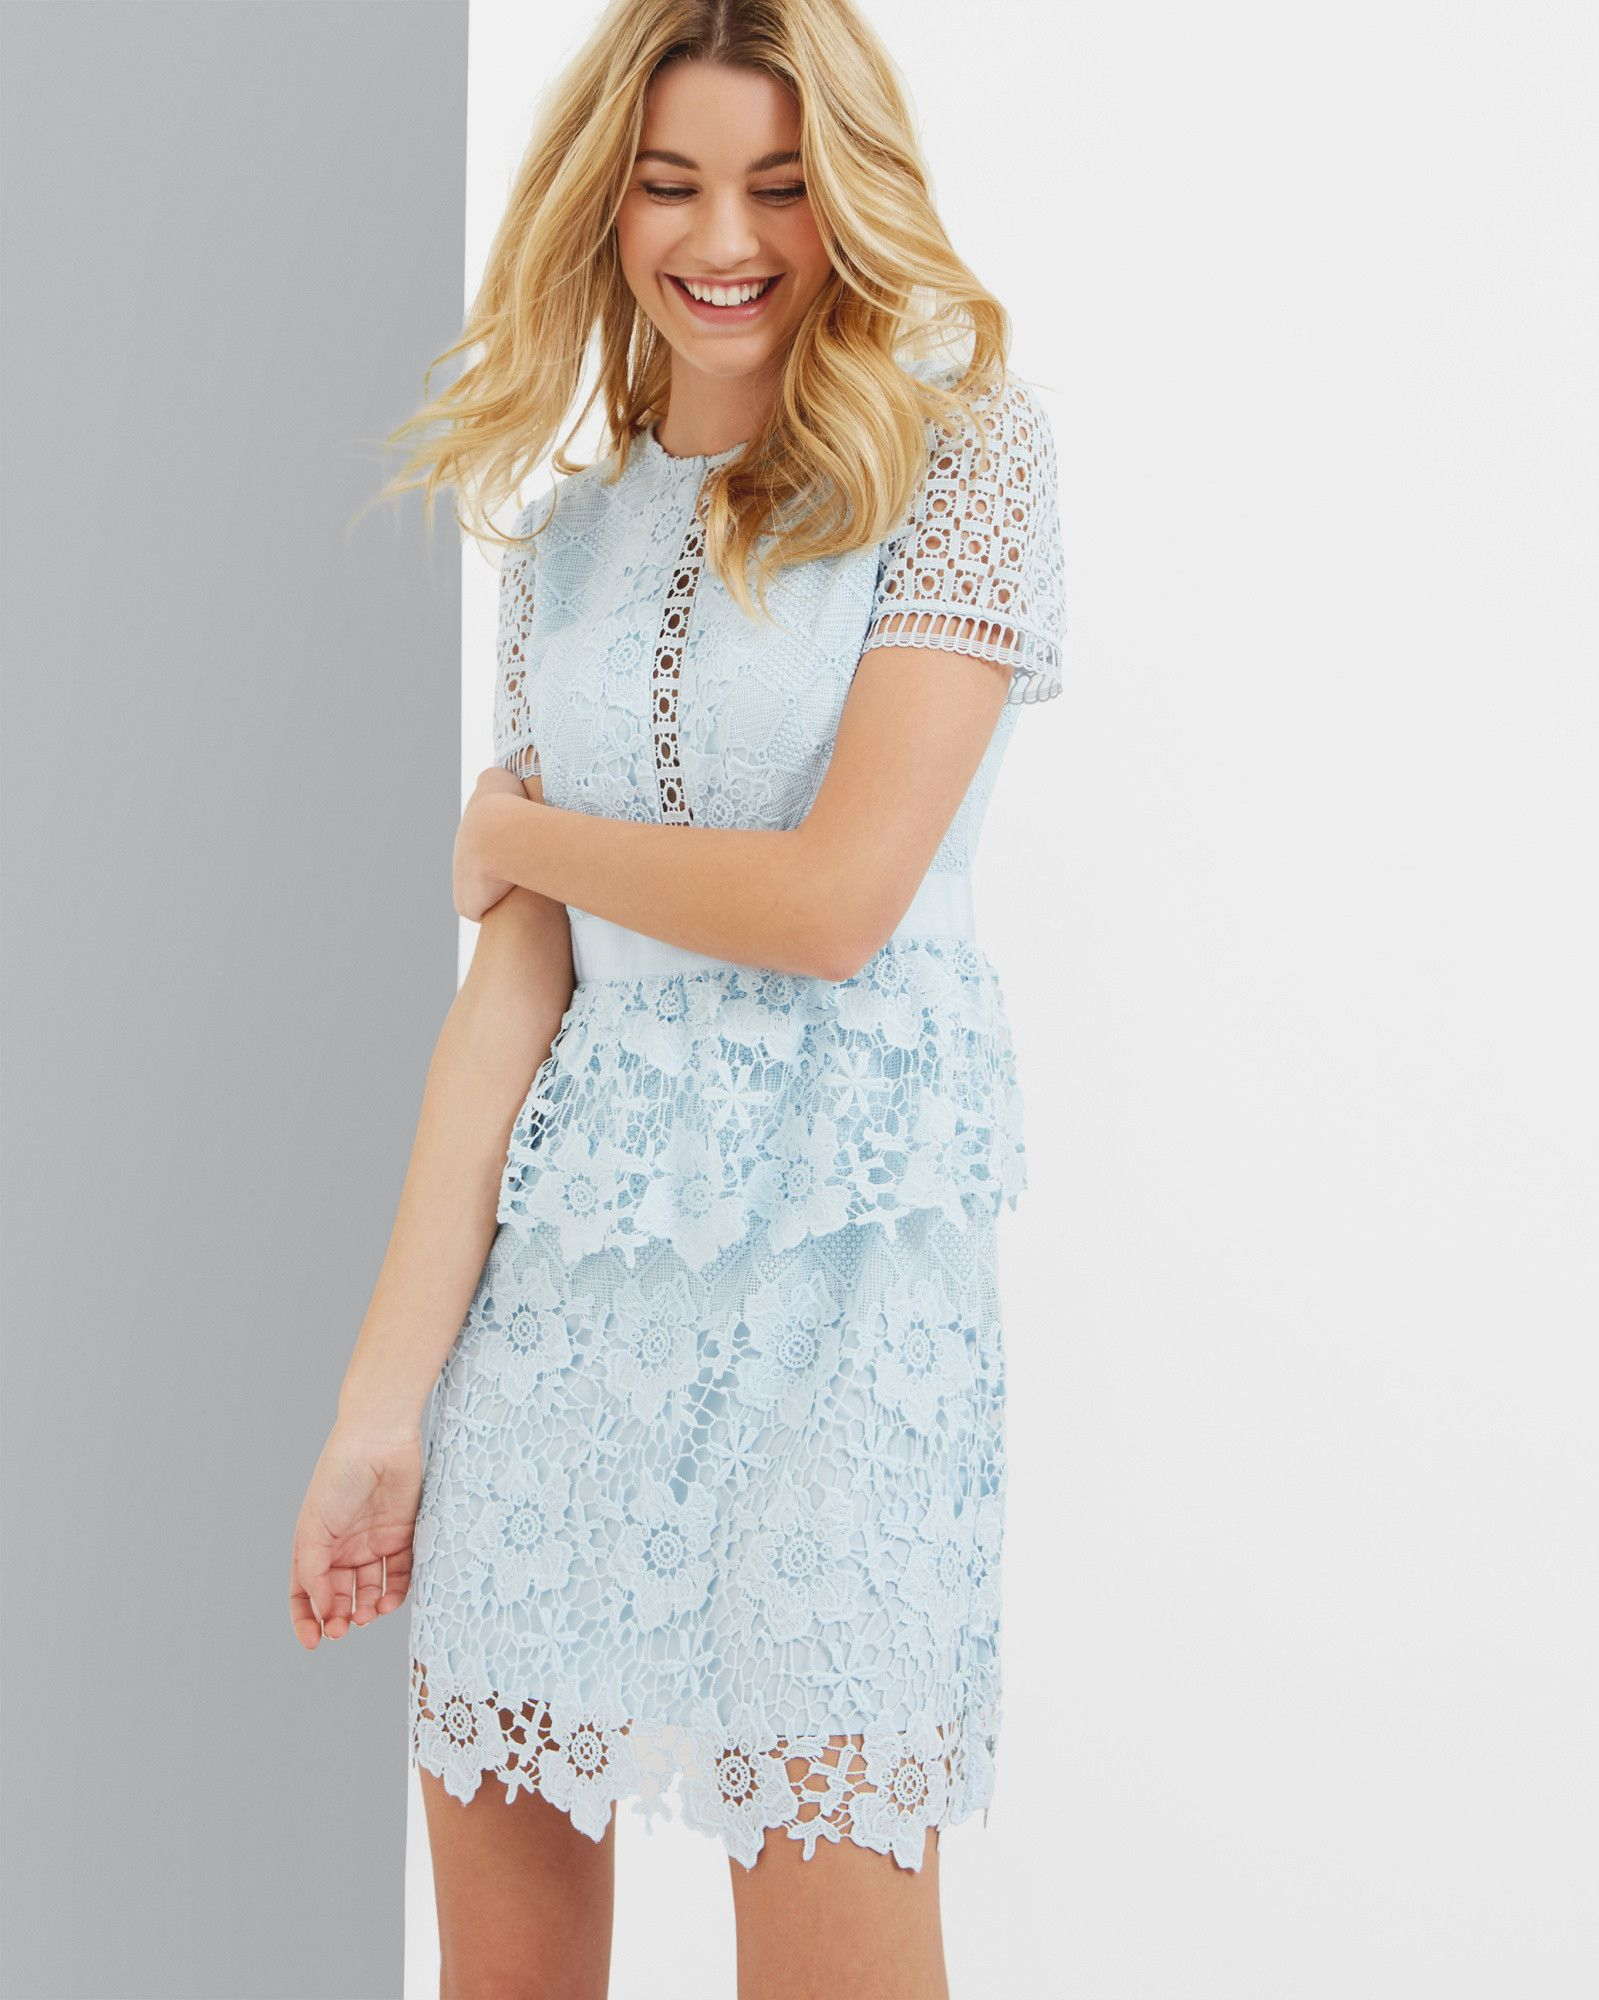 98b2a862cd7d0e WedWithTed  TedBaker  Contest - Layered lace dress - Baby Blue ...